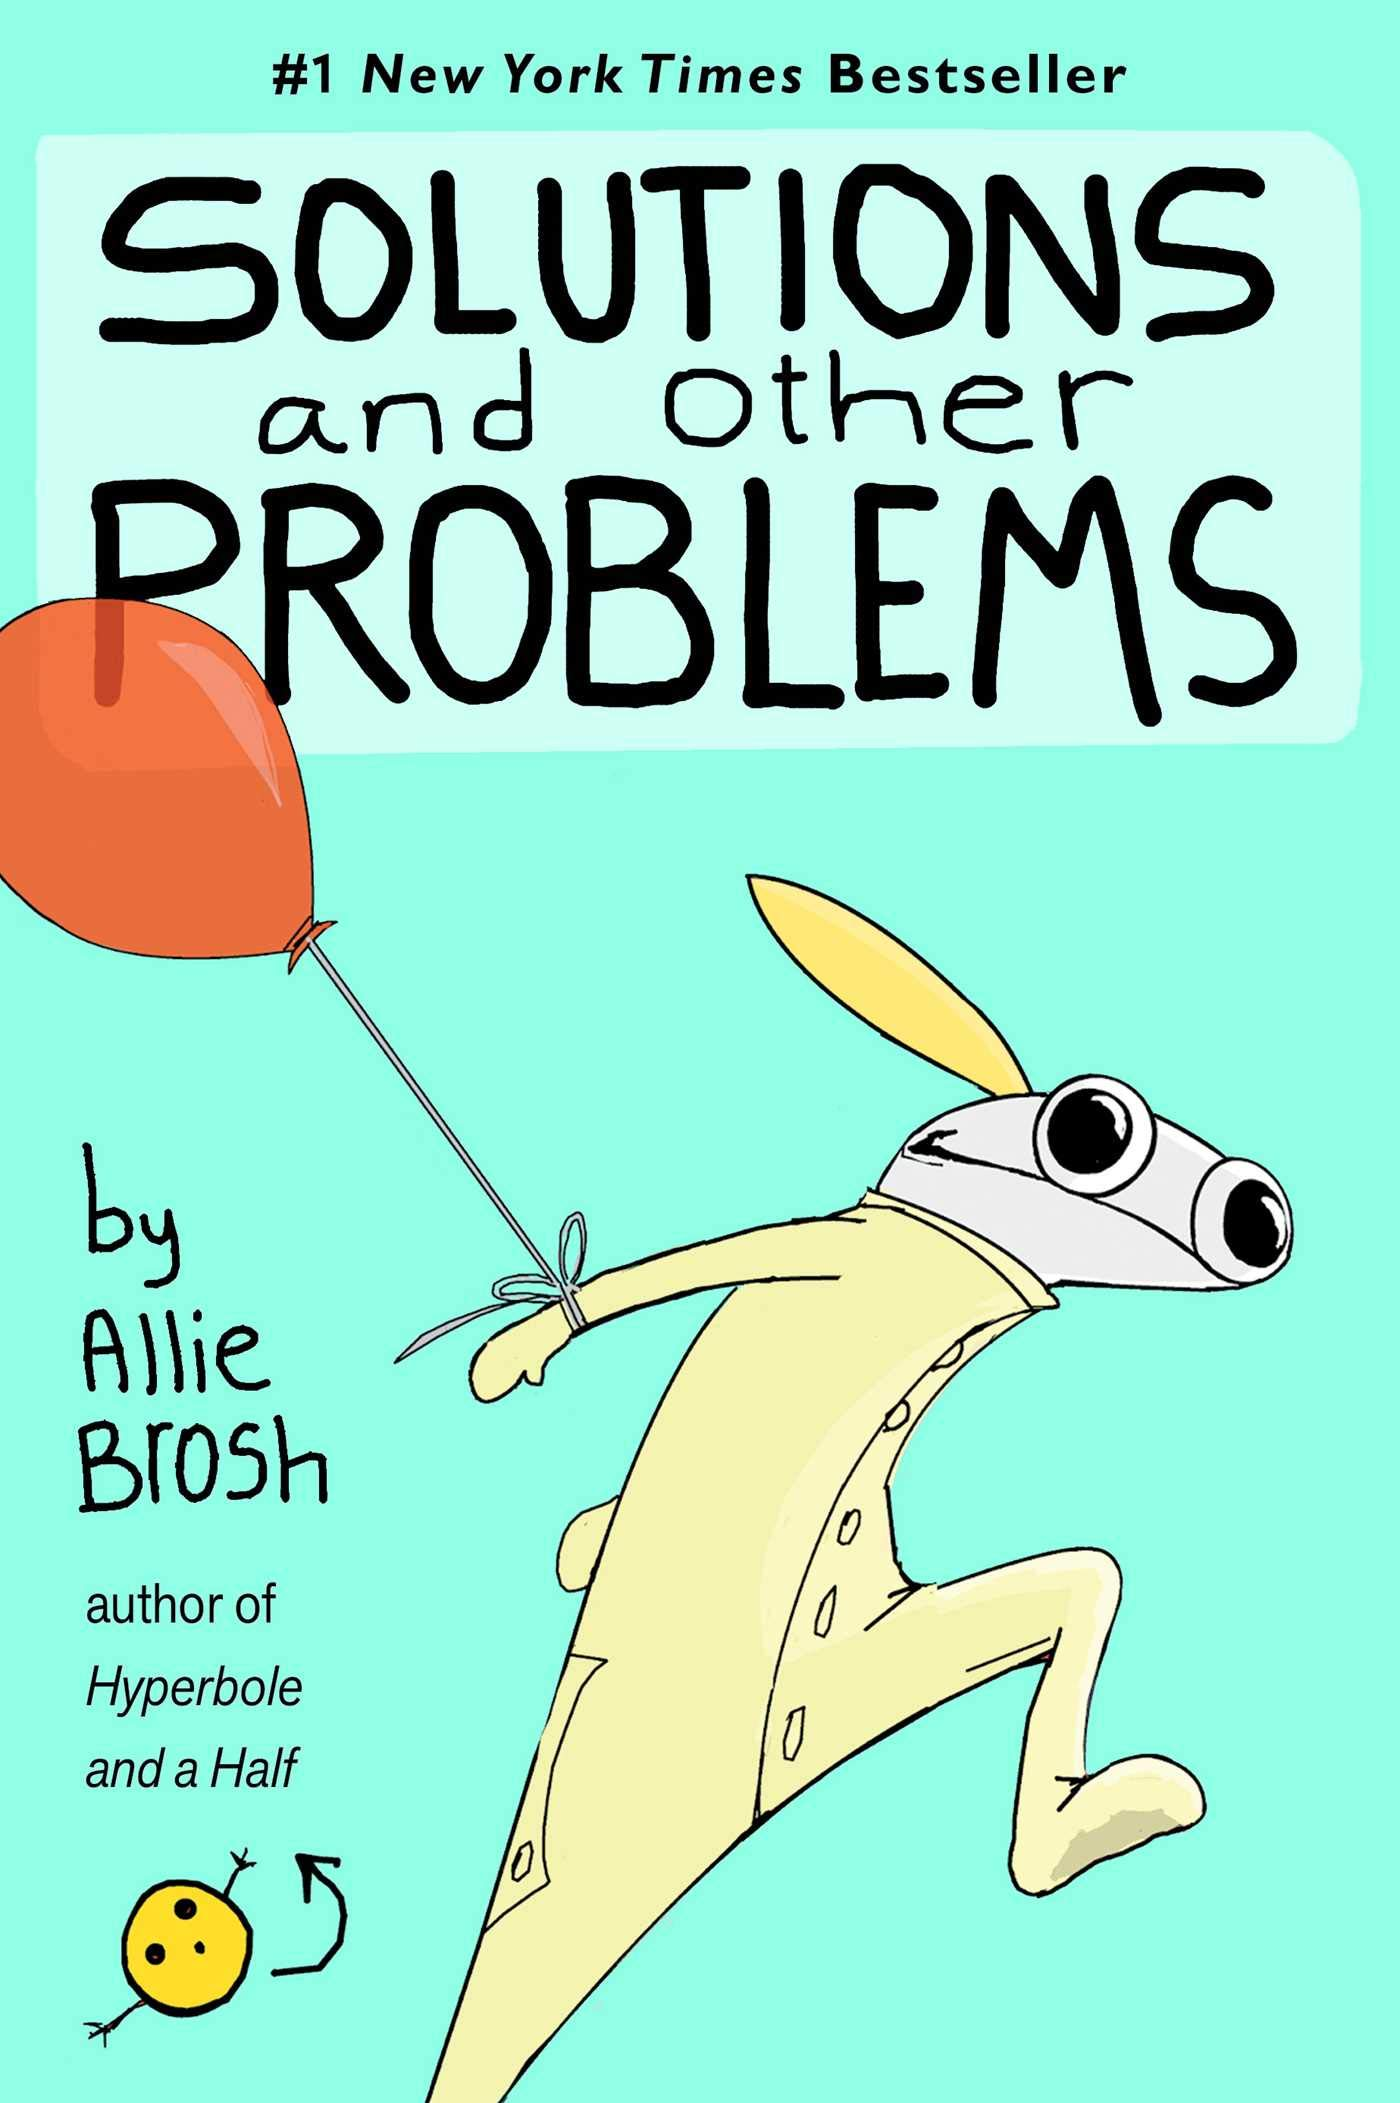 Solutions and Other Problems: Brosh, Allie: 9781982156947: Books - Amazon.ca